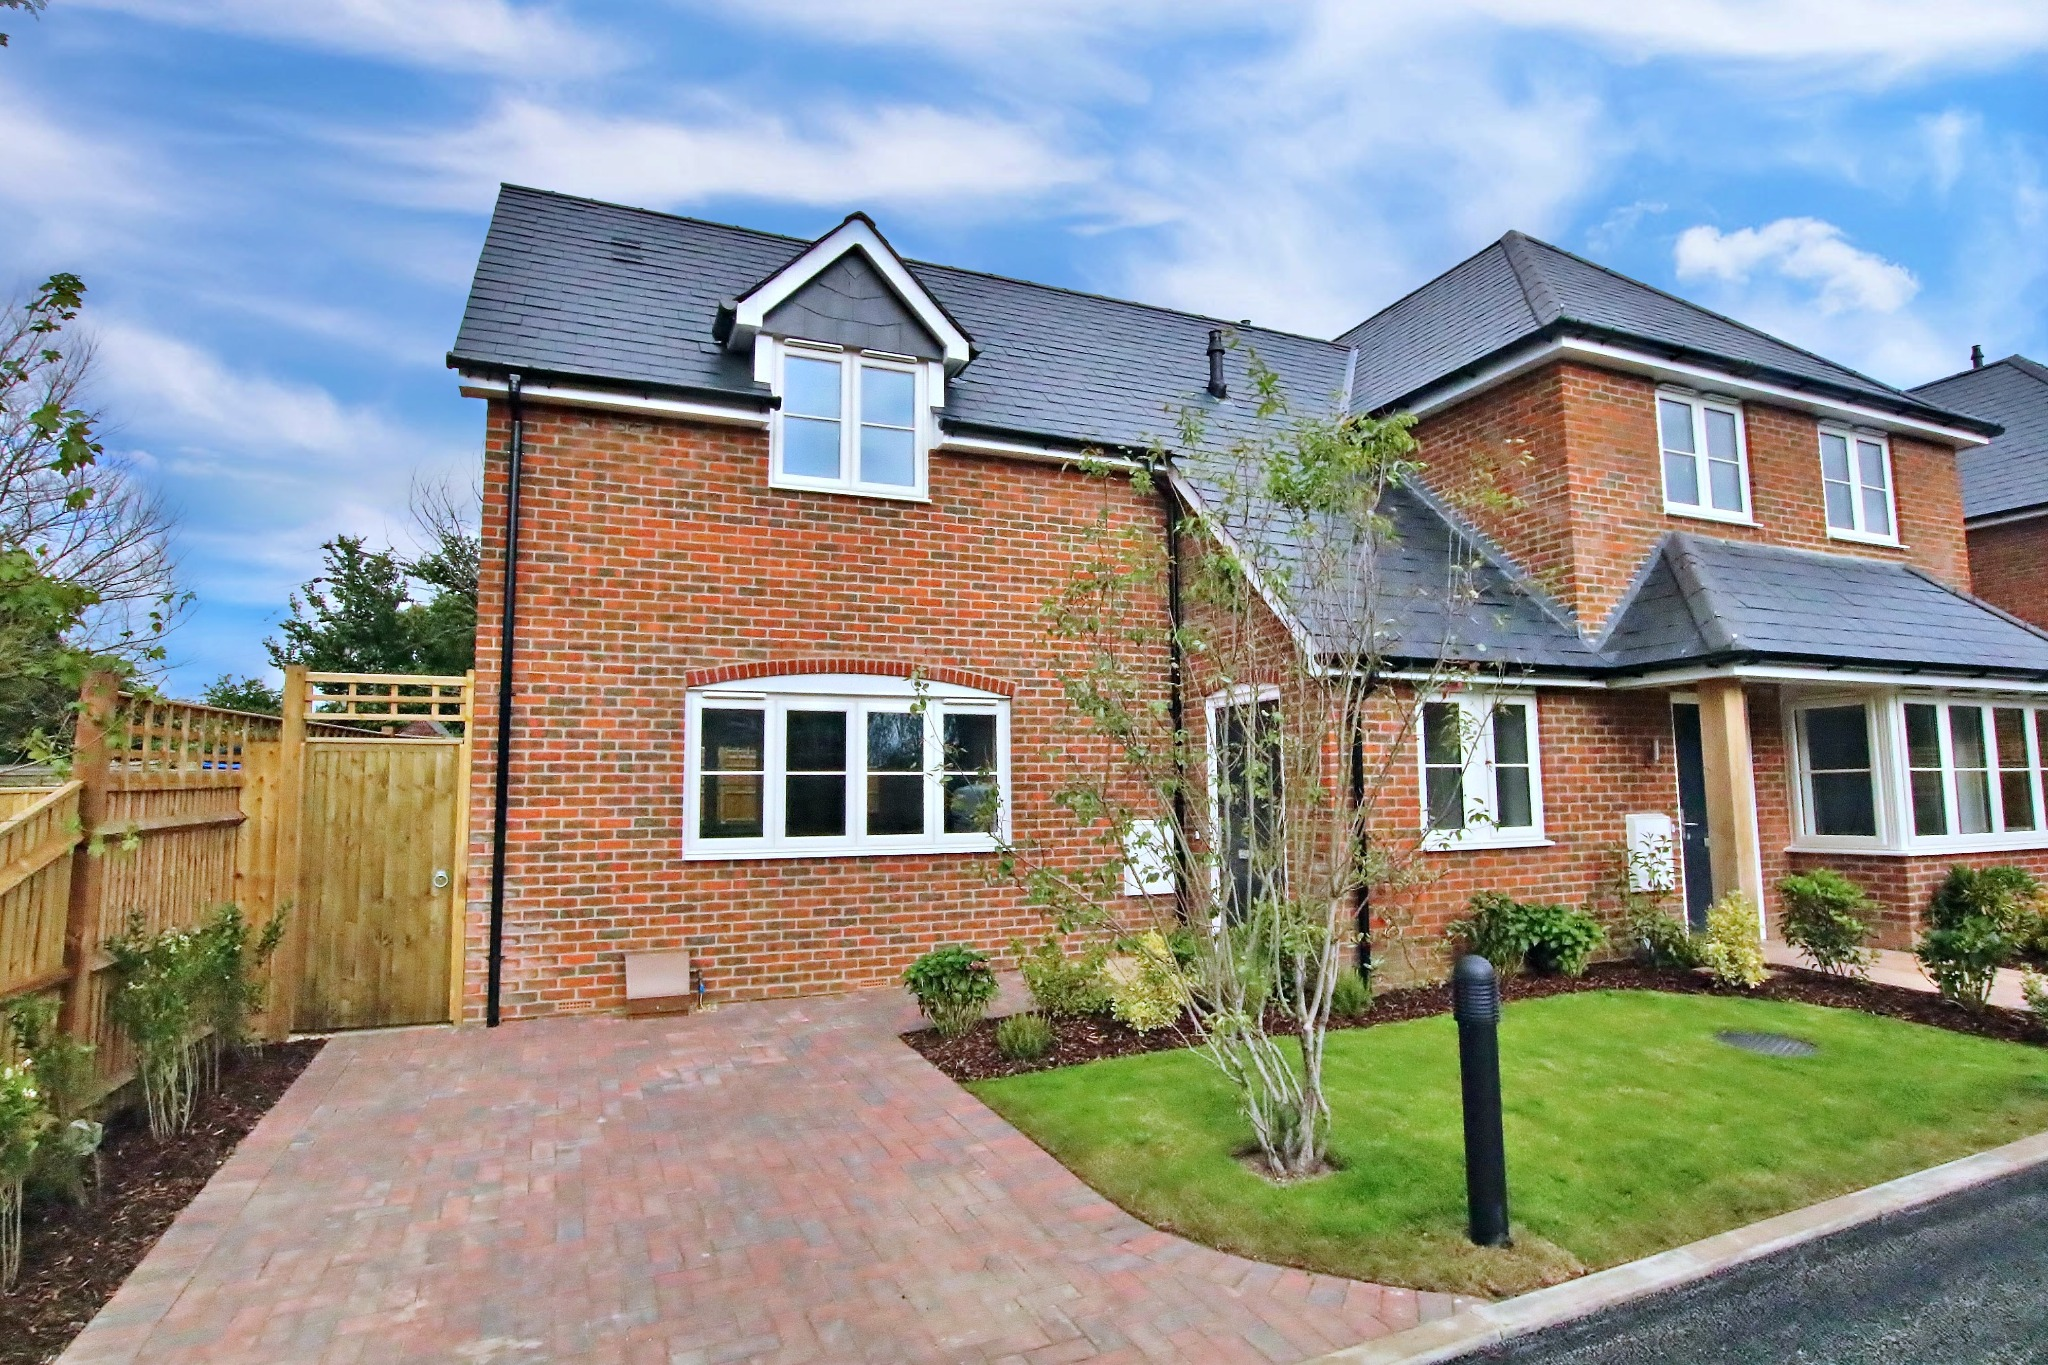 Brand New Two Bed Semi Detached With Help To Buy And Ready To Move In!